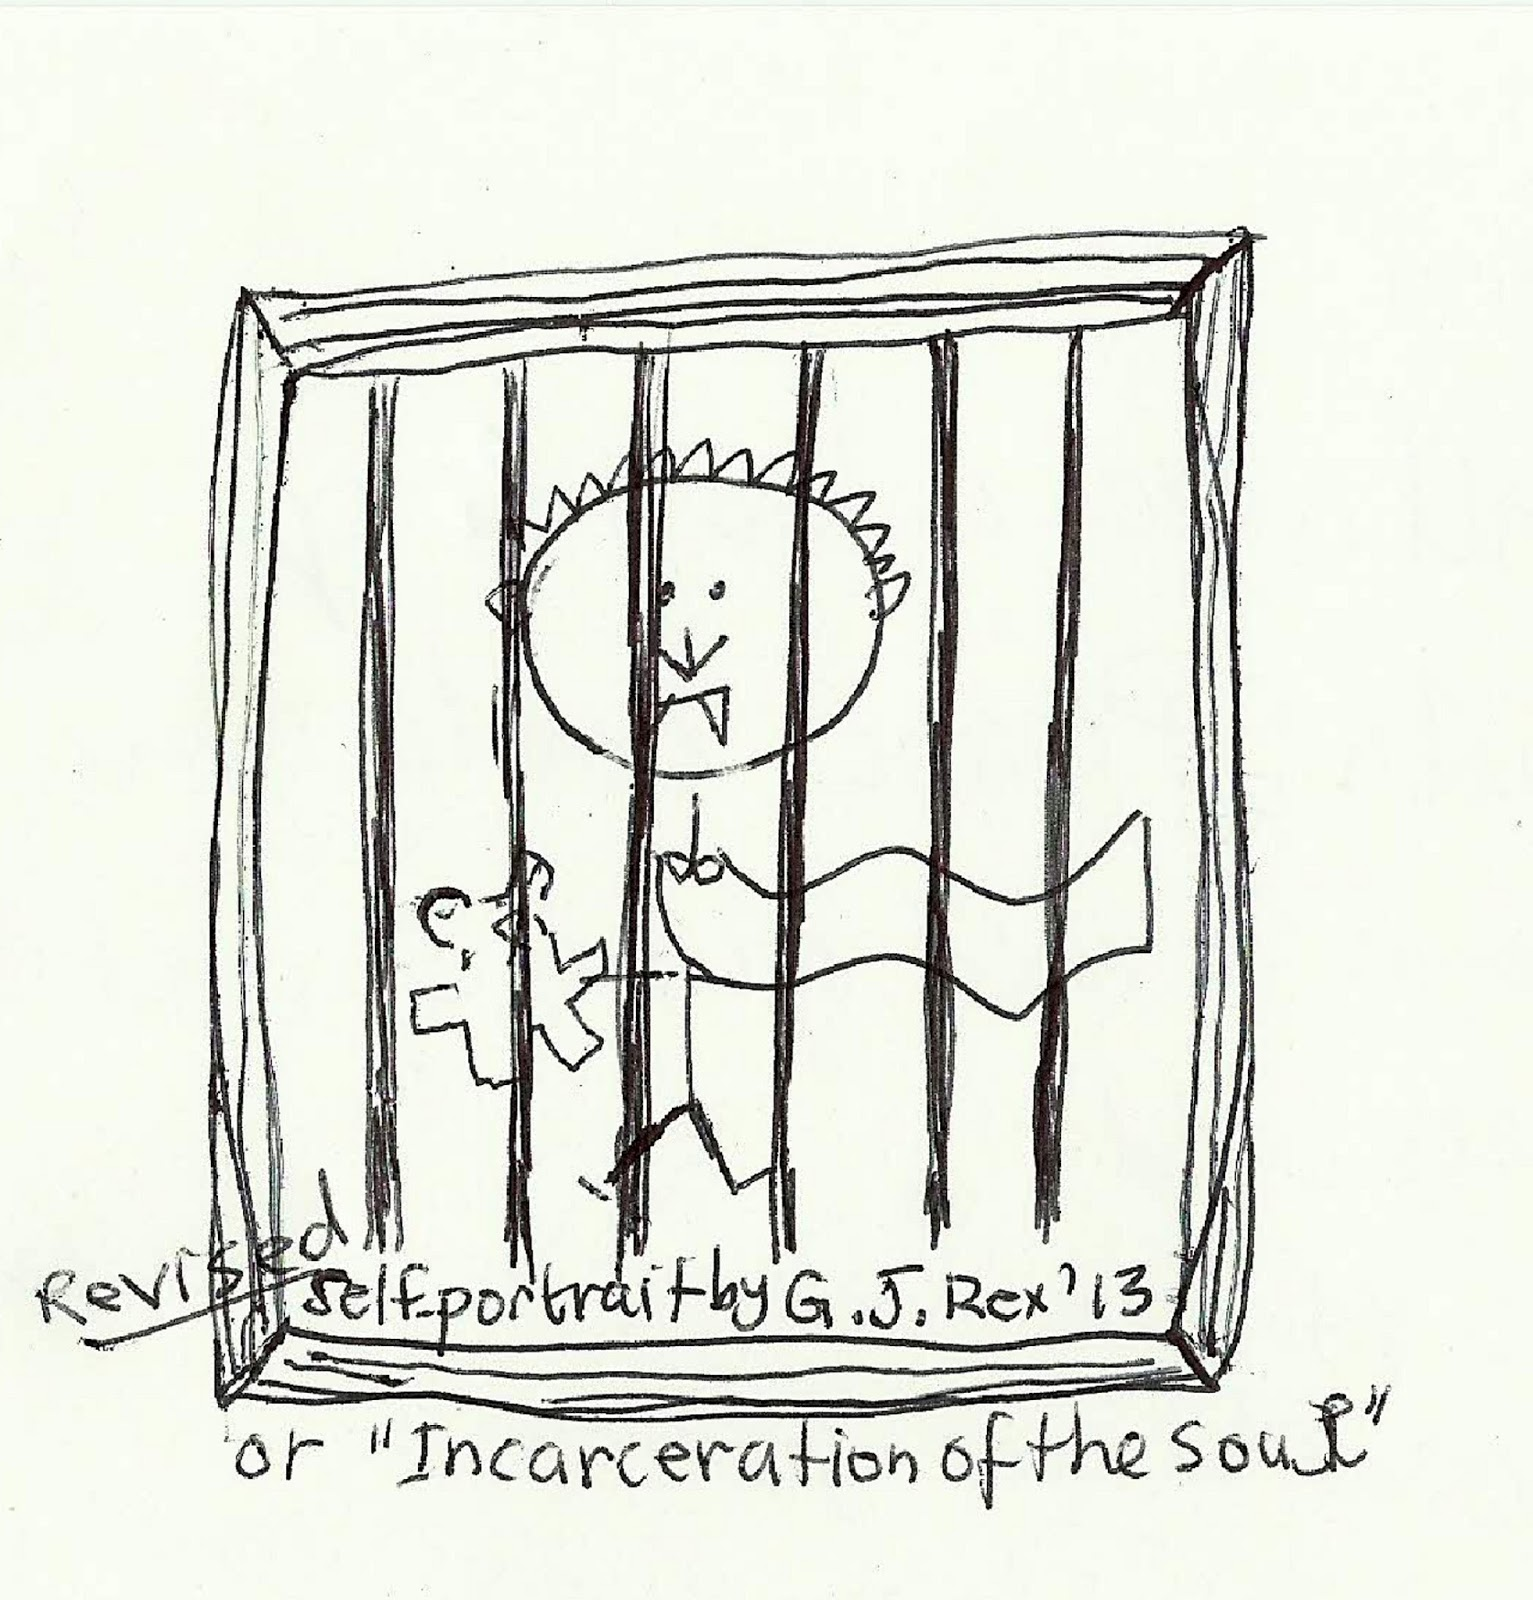 Stick-figure sketch of a vampire baby and teddy bear behind bars.